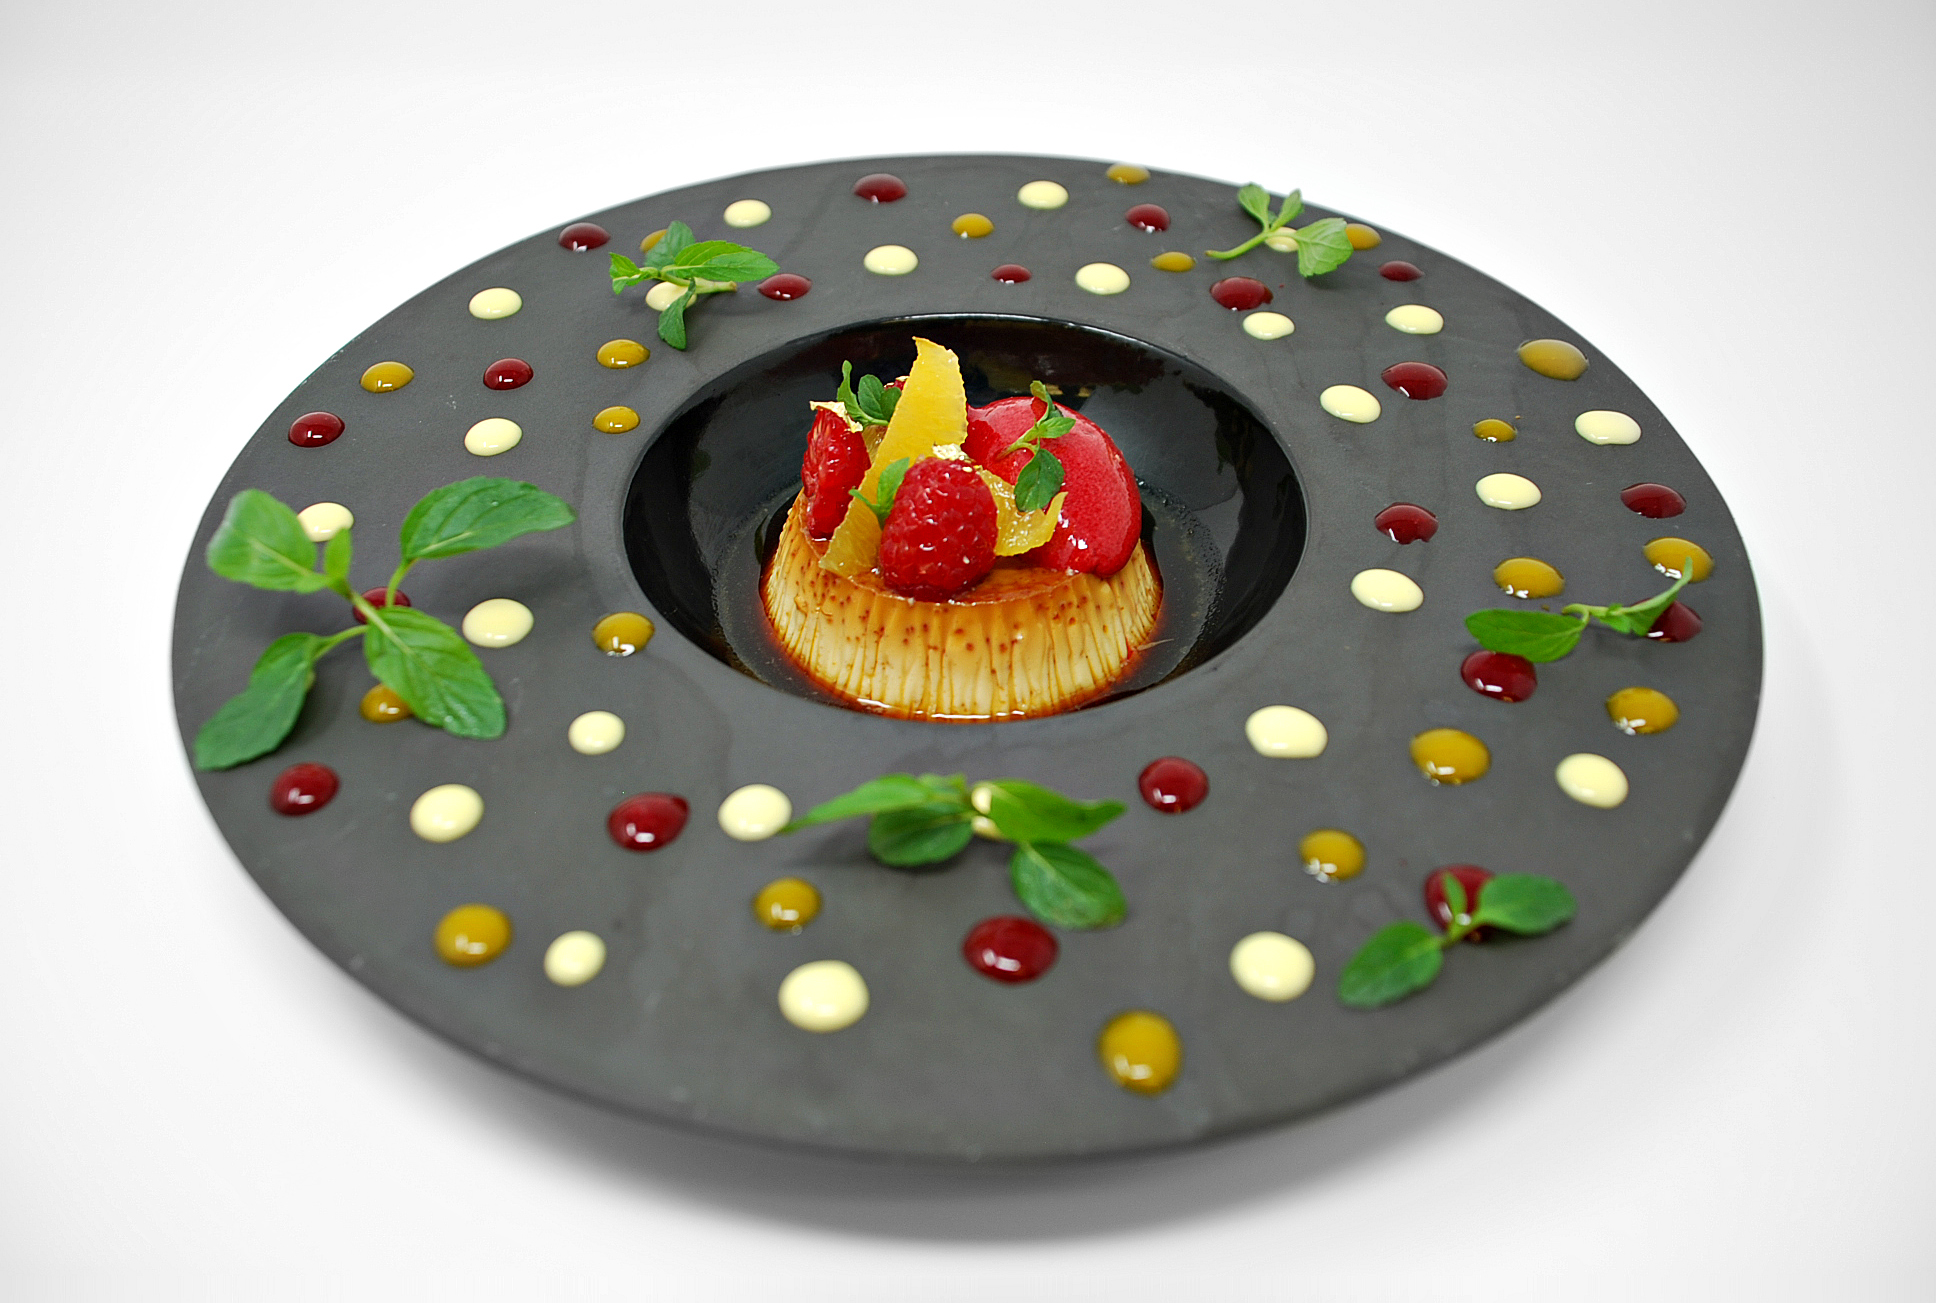 Caramel Flan, Clémentine, Mint and Raspberry